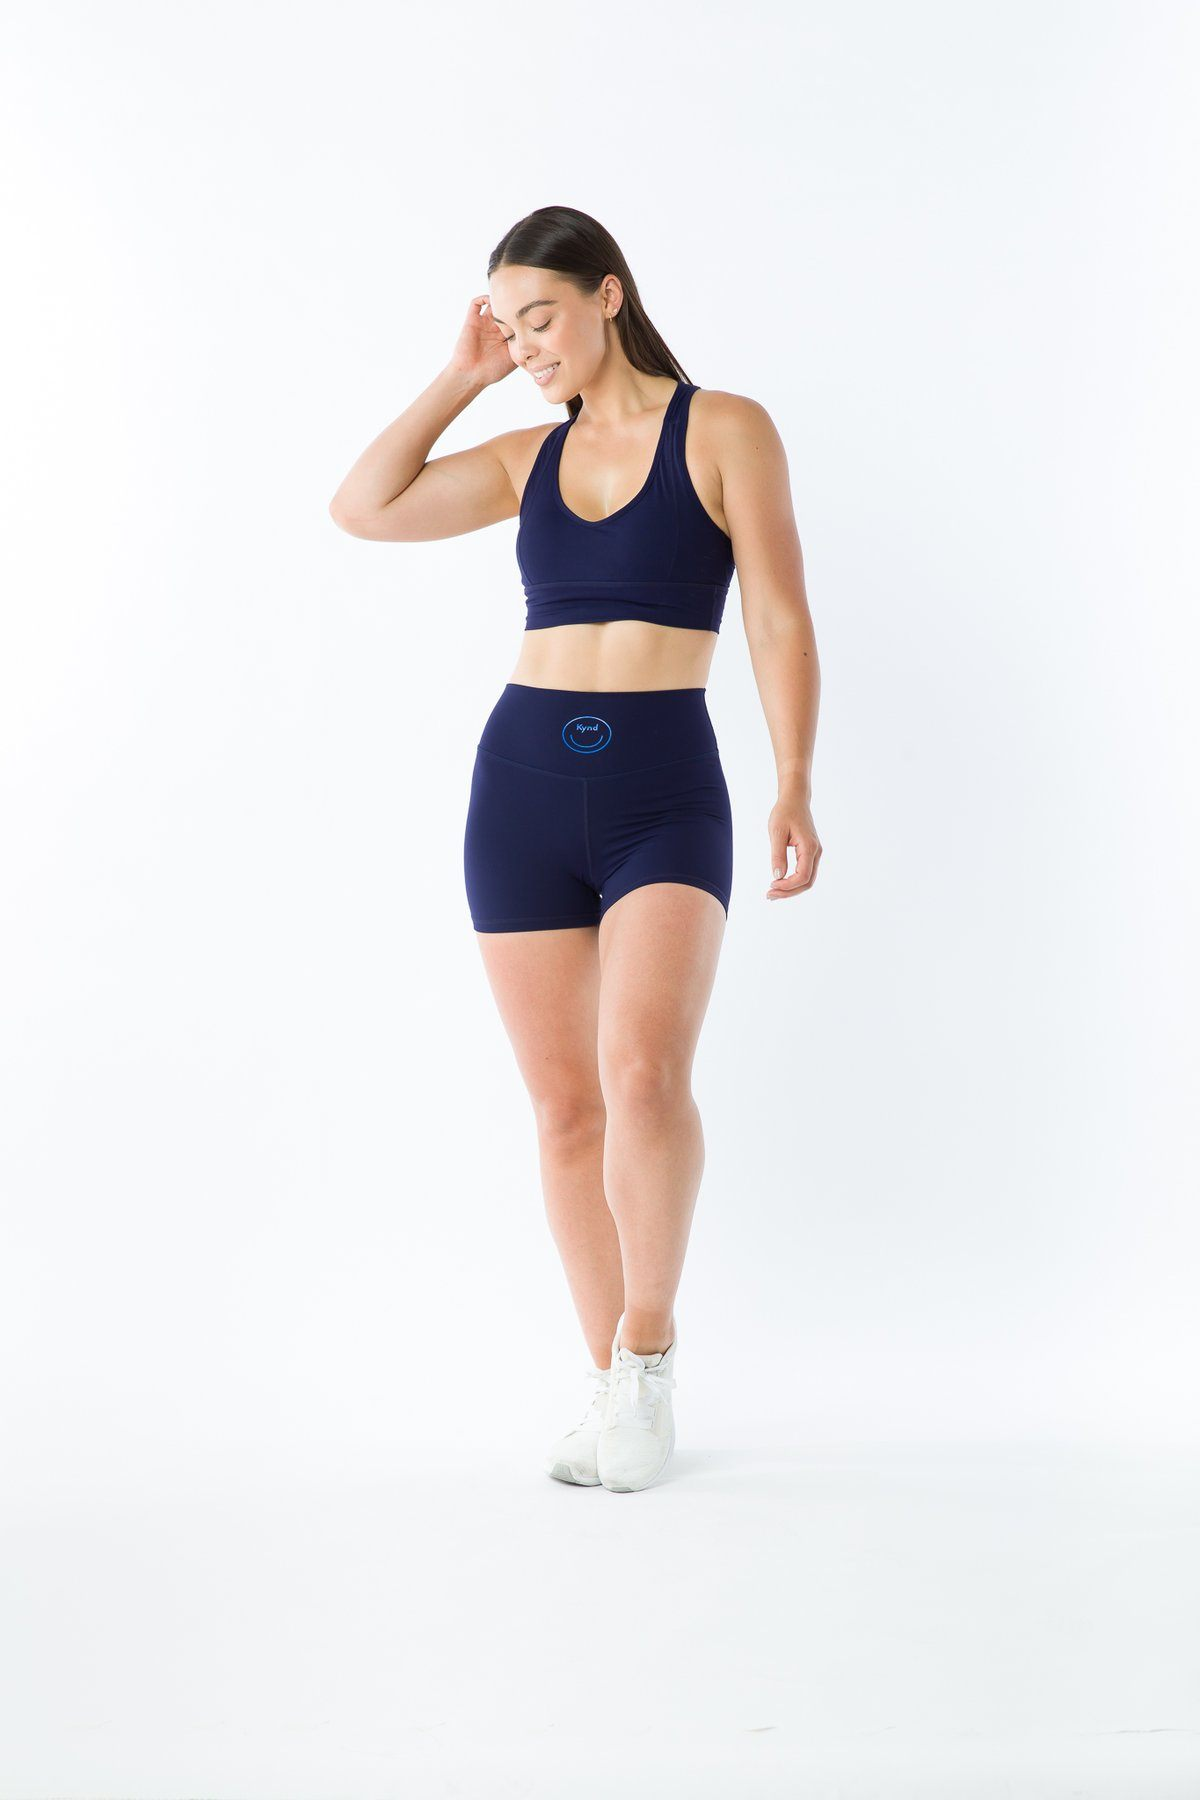 Kynd 01 Sports Bra - Navy